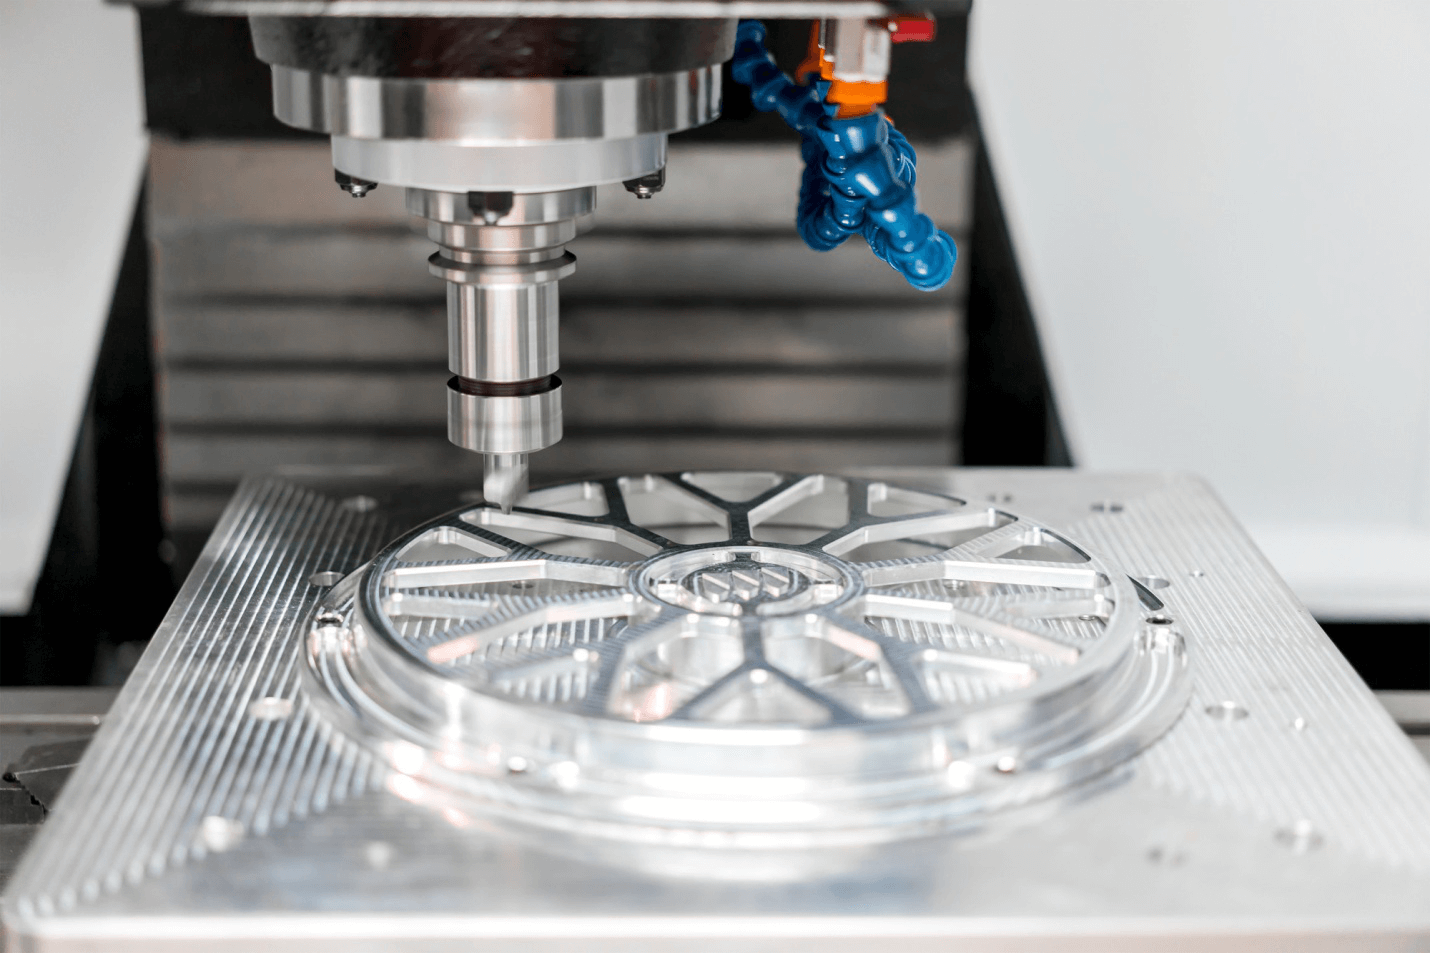 Rapid tooling molding: What is difference between direct and indirect molding?